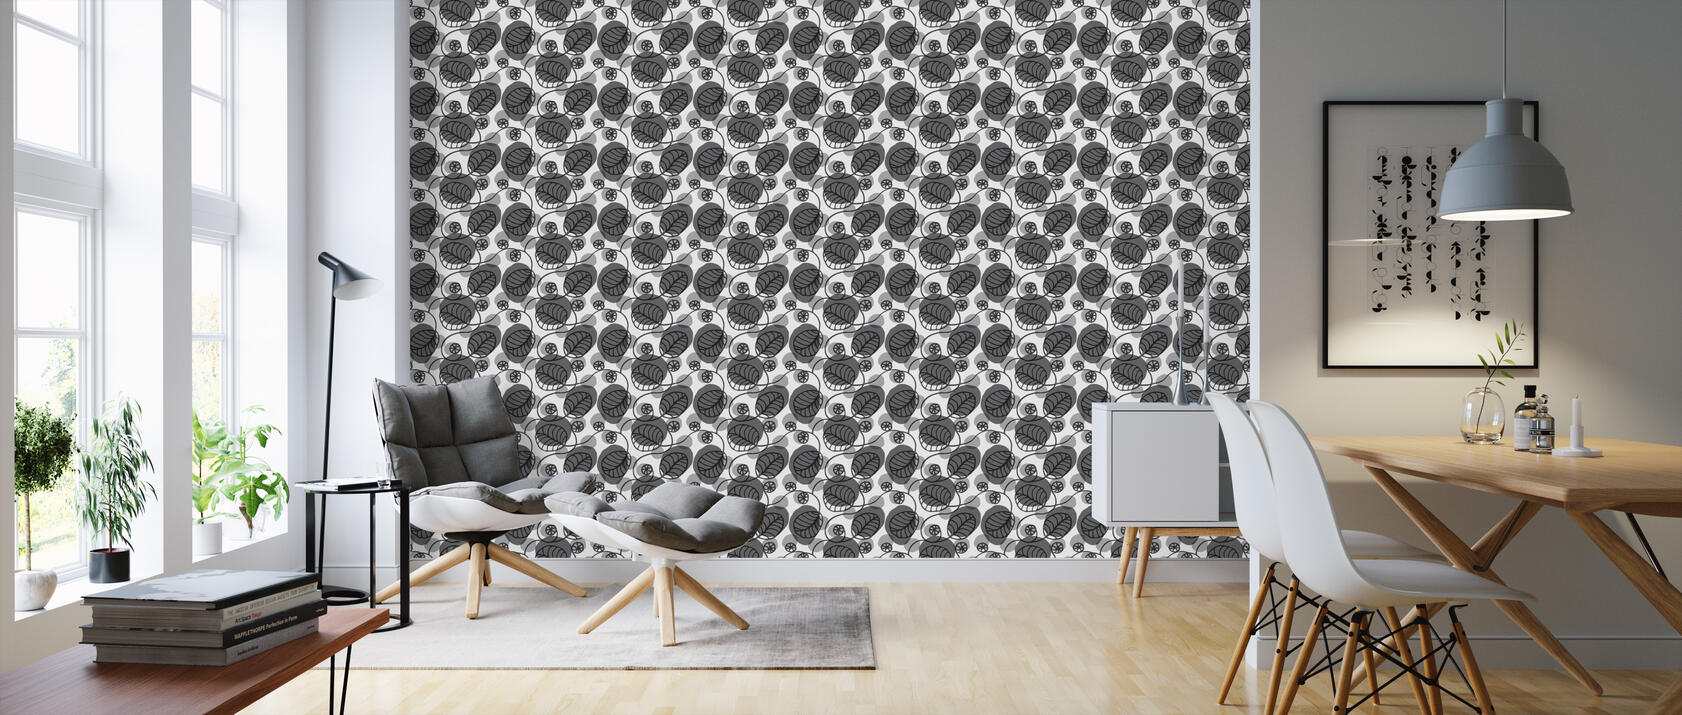 flora grey eine tapete f r jeden raum und jedes ambiente photowall. Black Bedroom Furniture Sets. Home Design Ideas